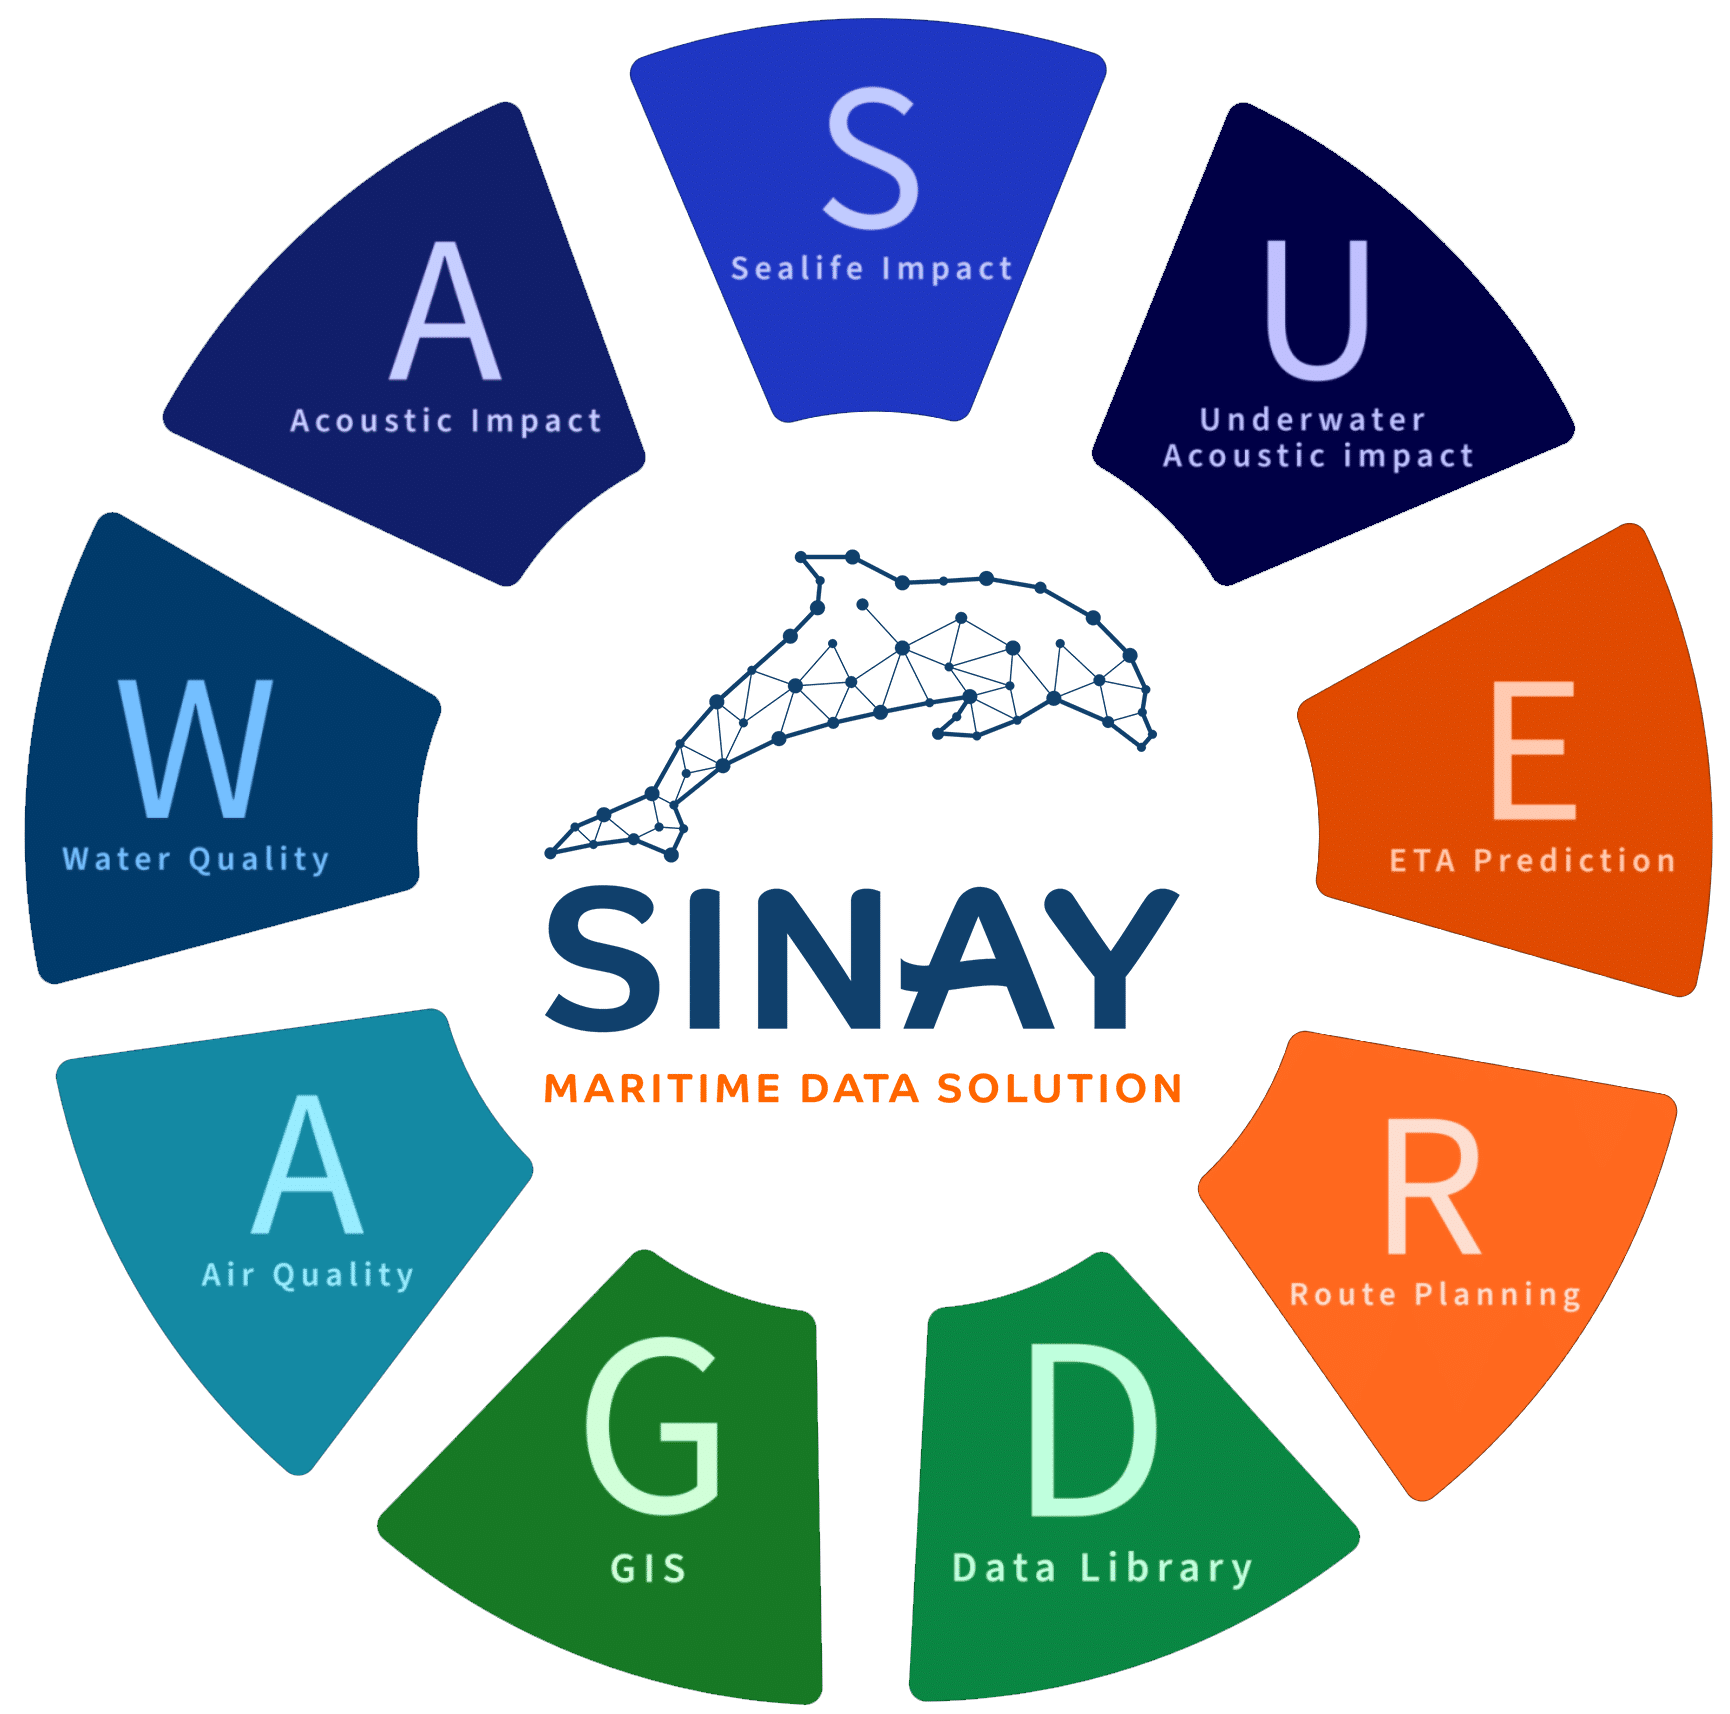 All the nine modules integrated into the Sinay hub